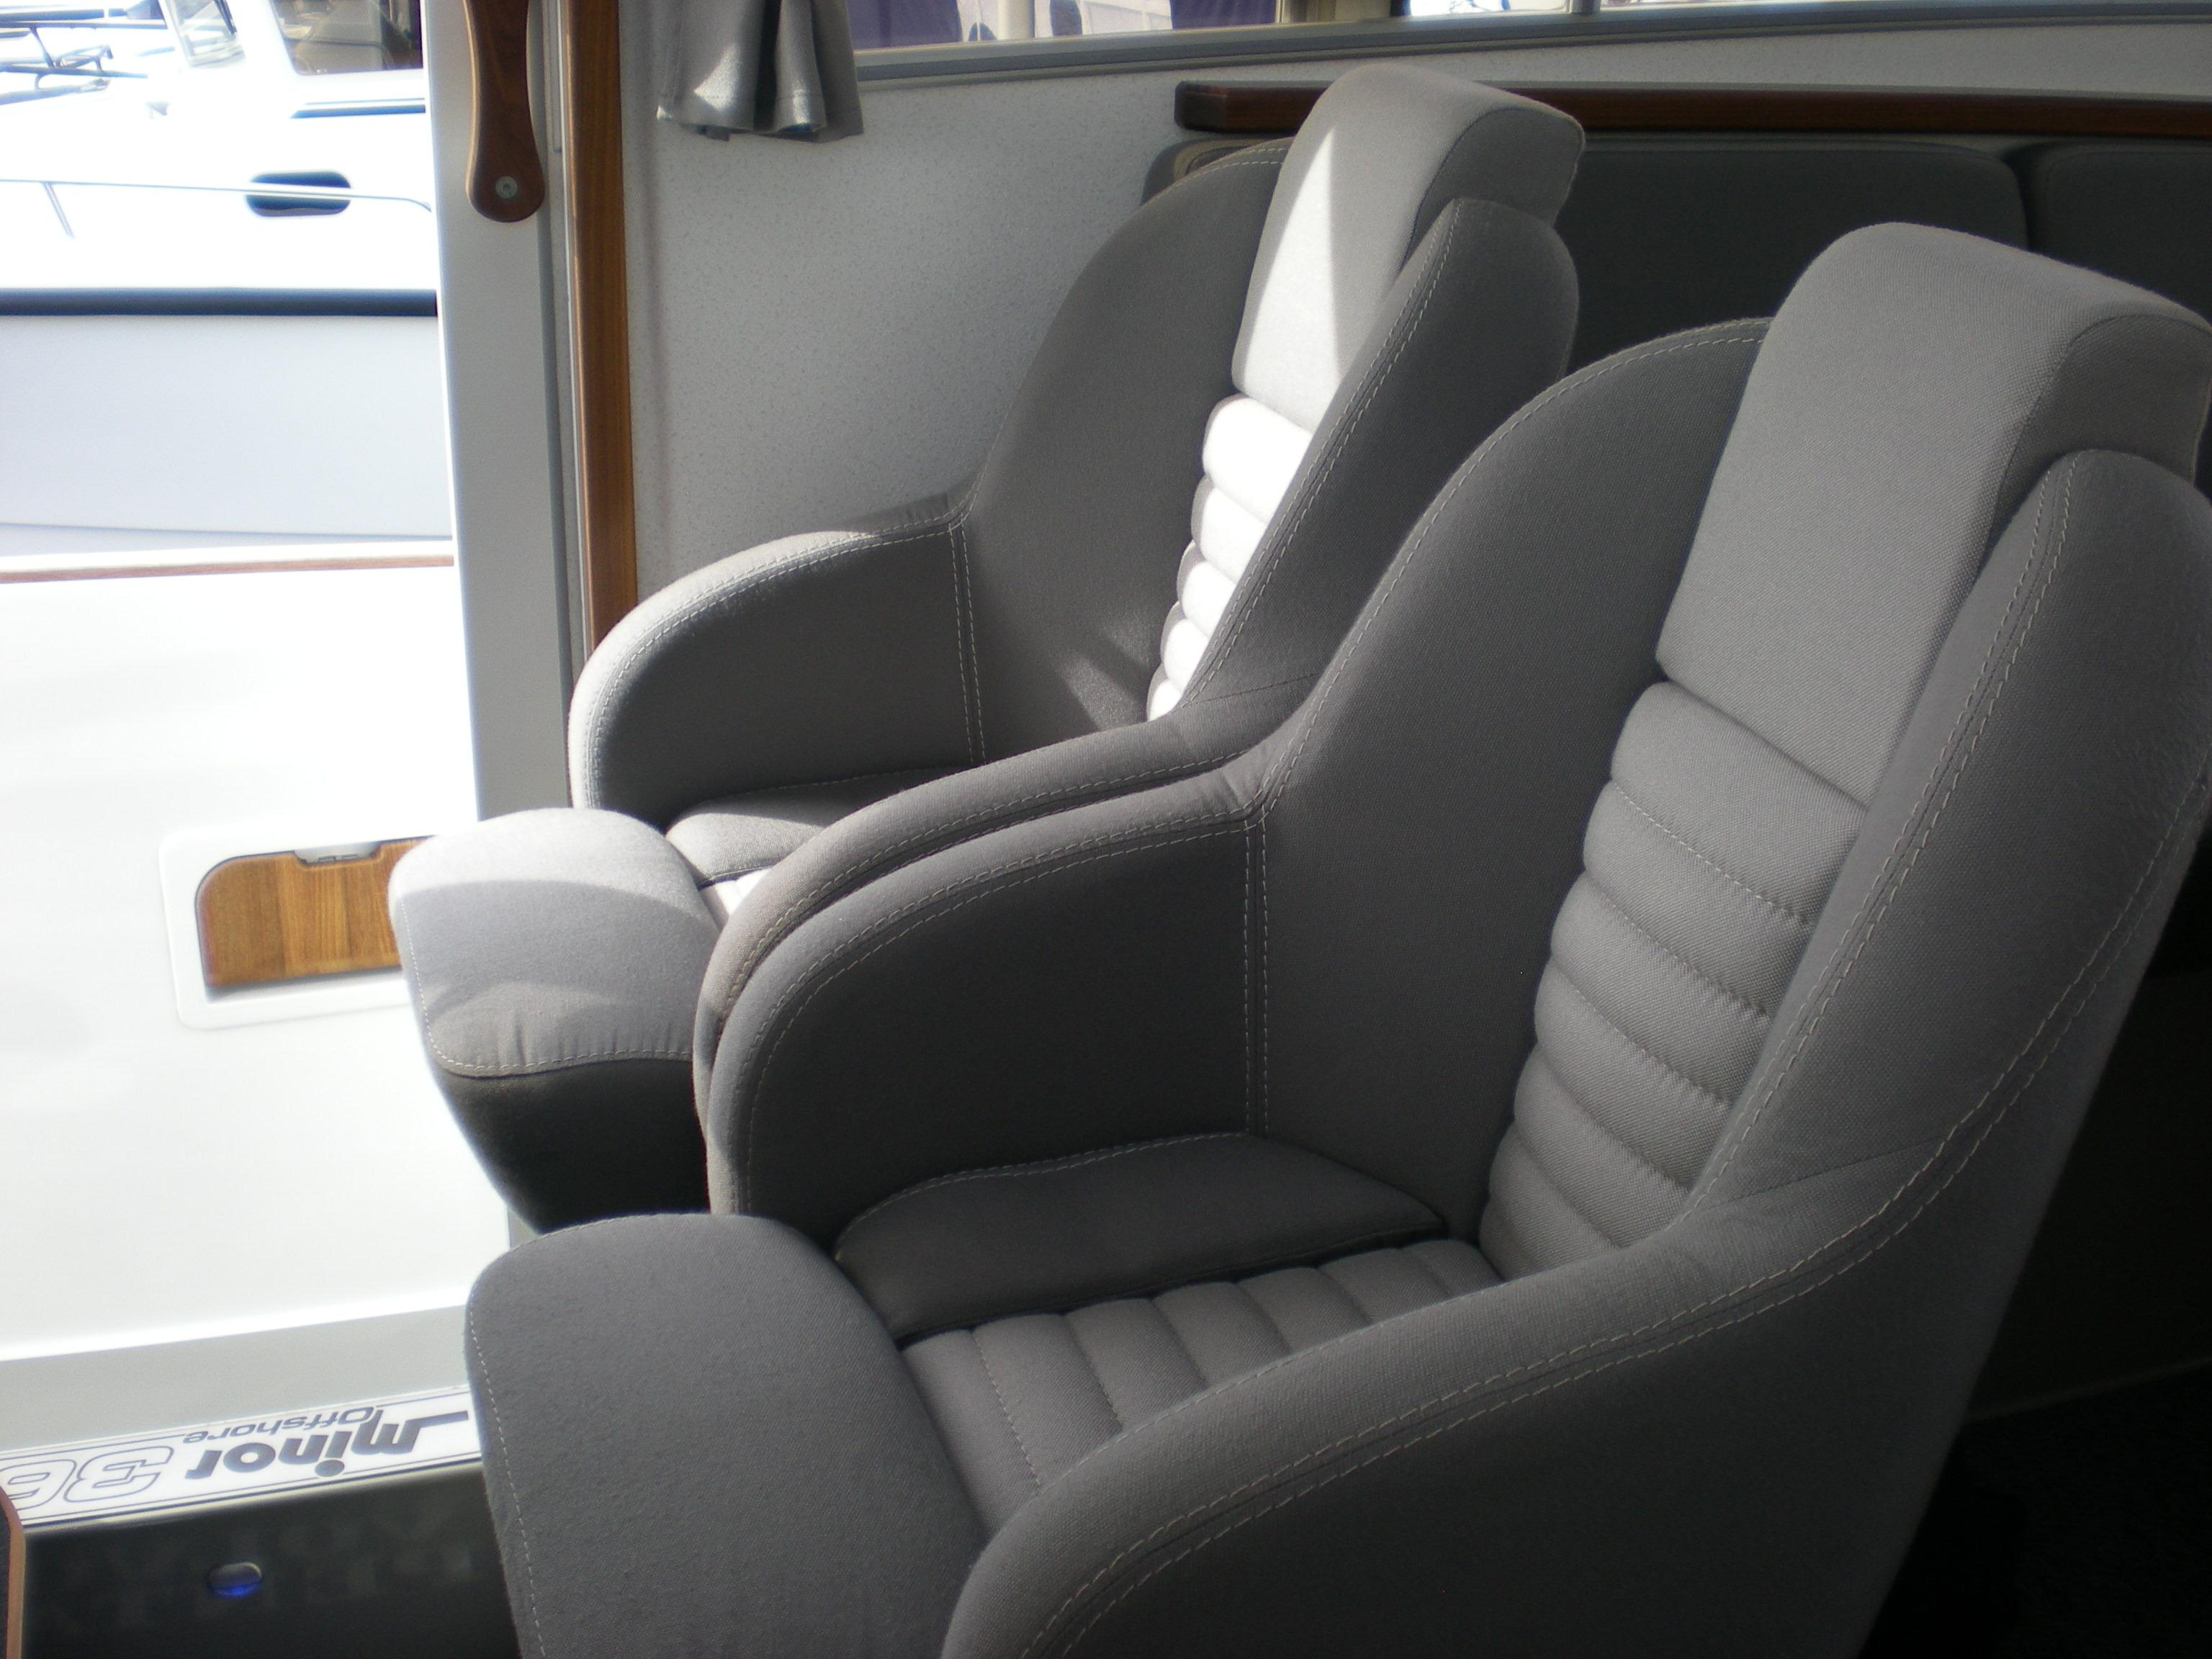 Sargo 36 Fly - helm seats